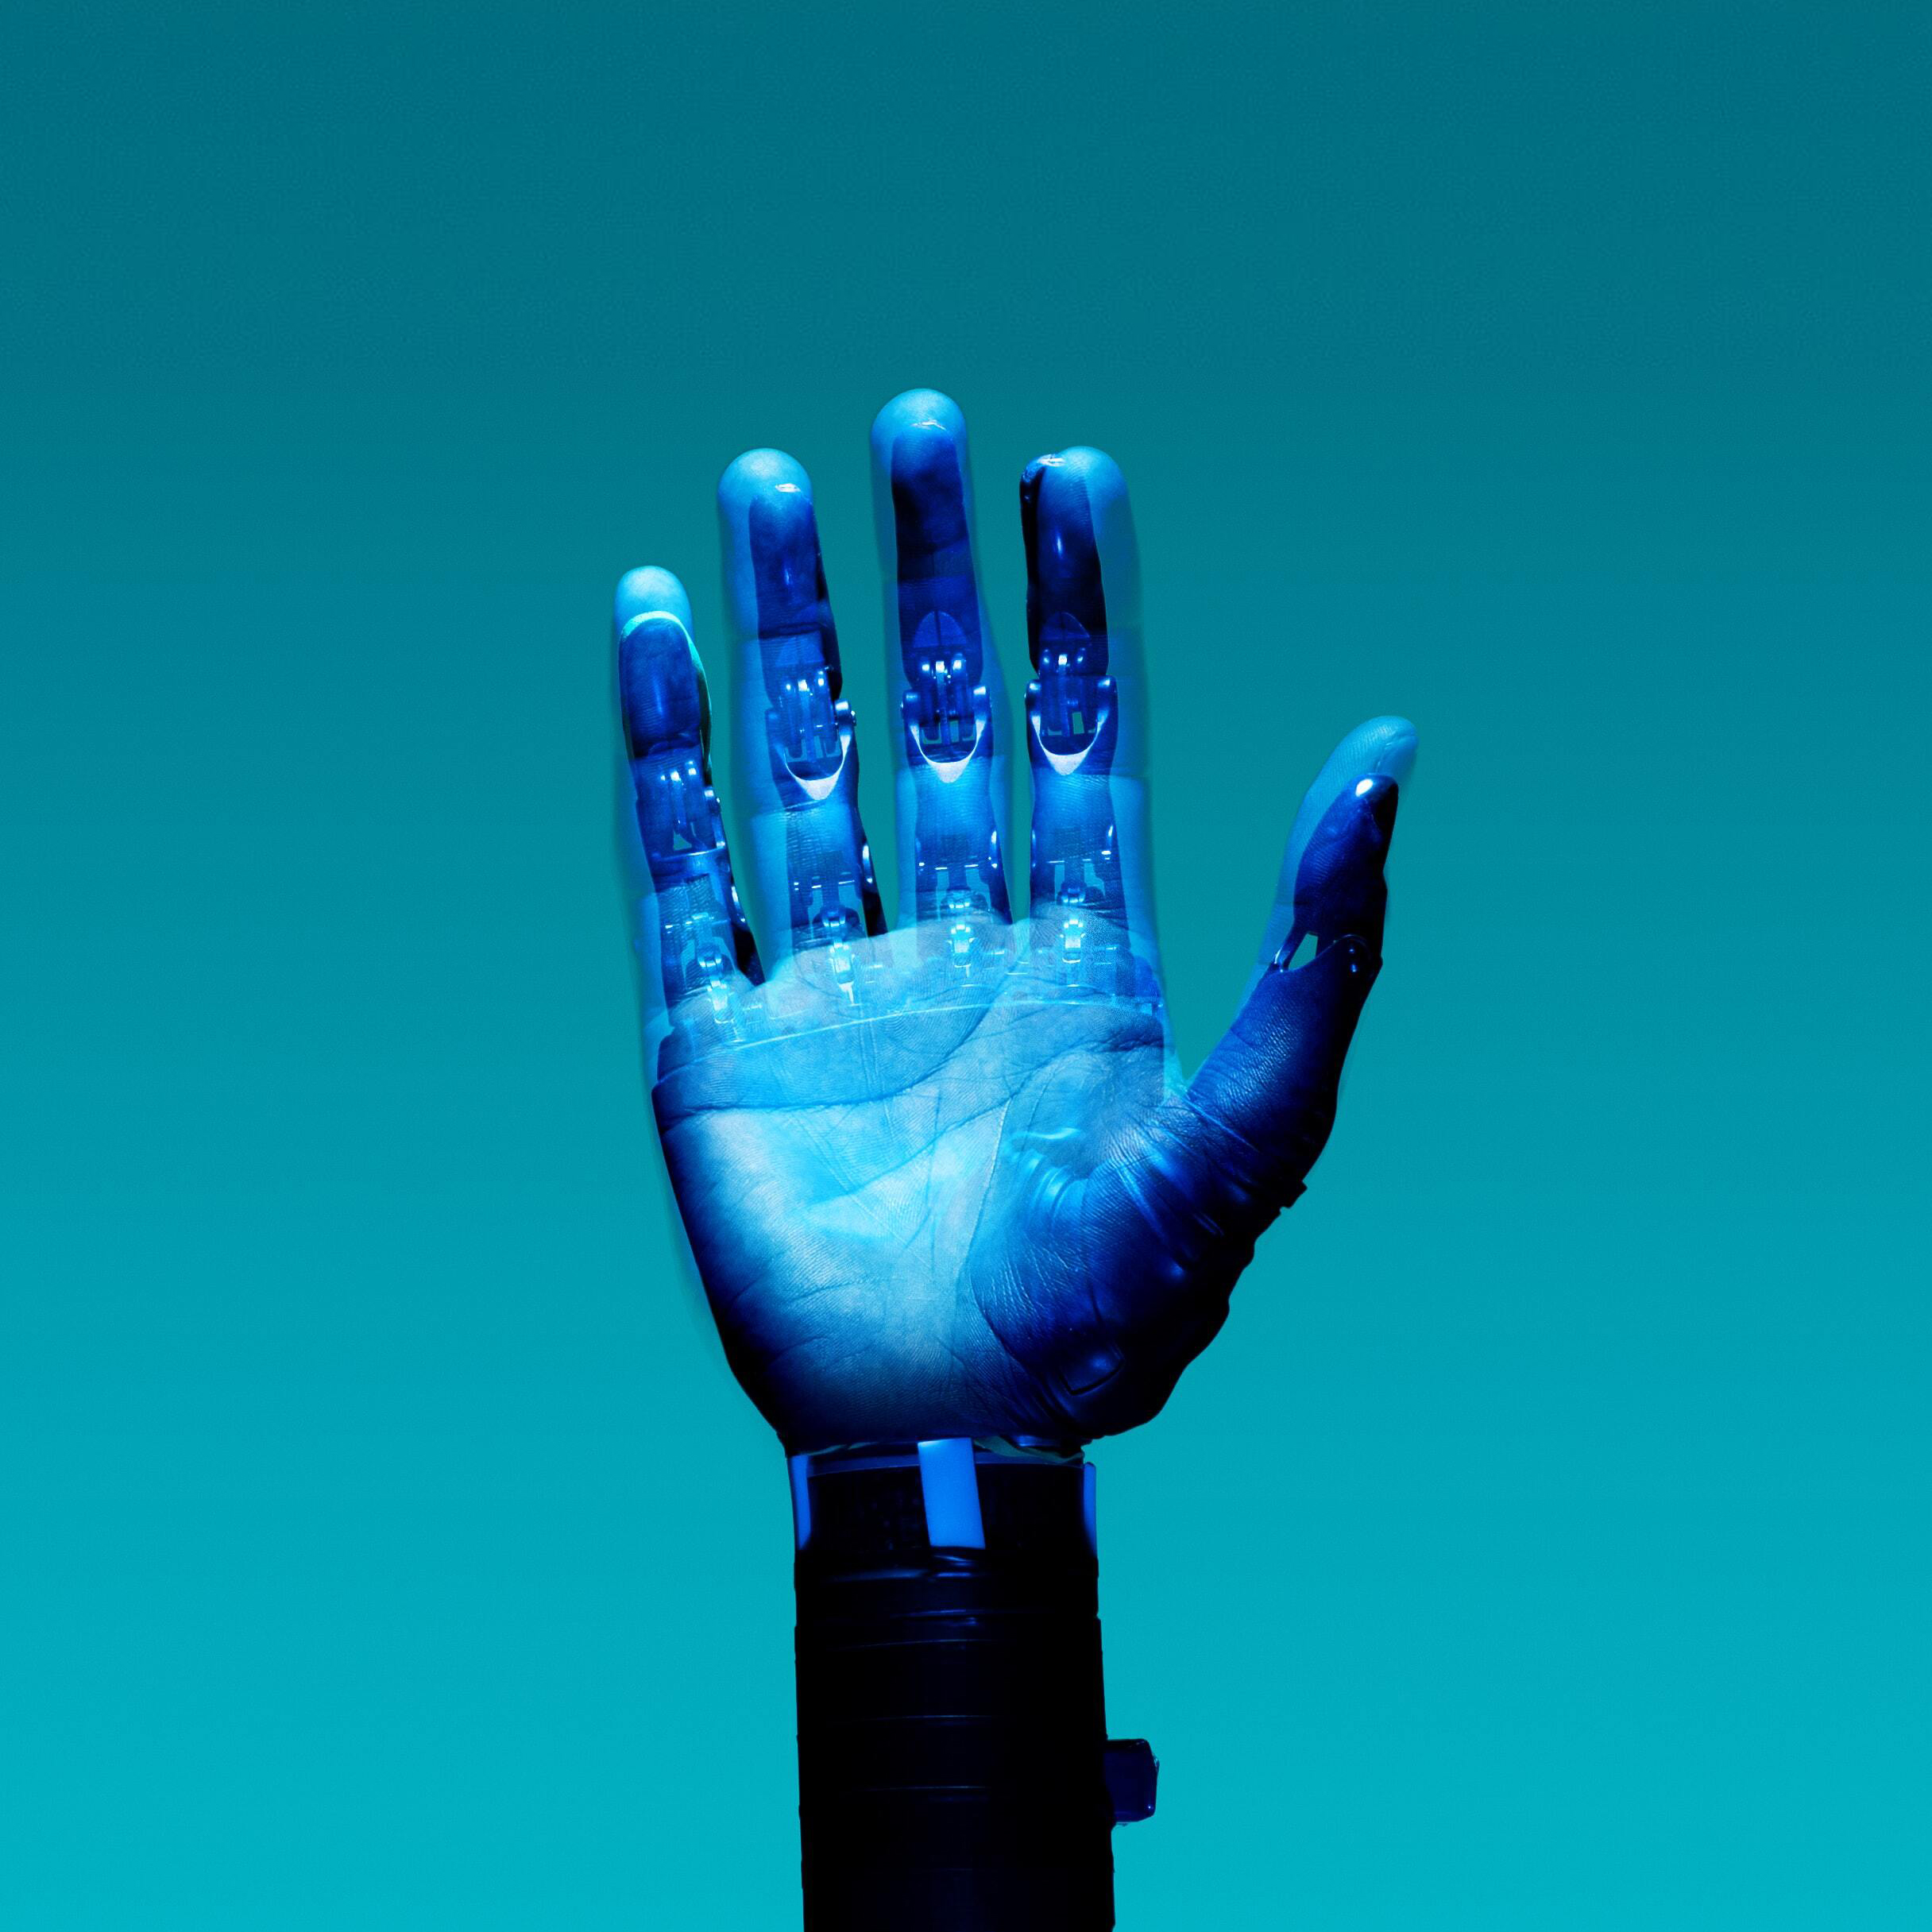 robotic hand extended